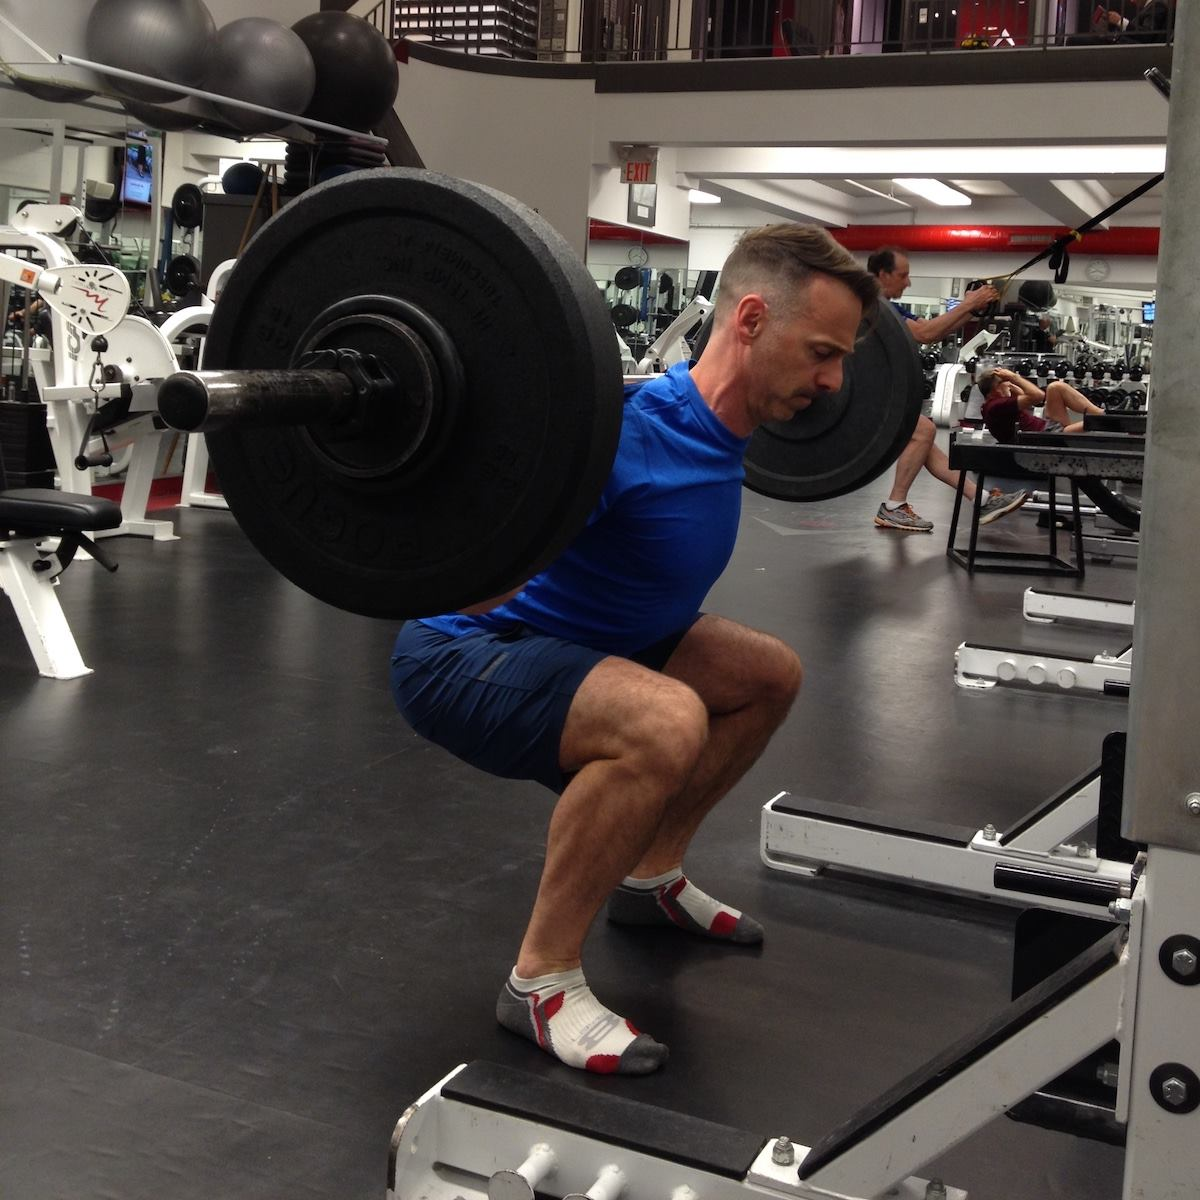 Why Did The Faggot Become A Personal Trainer?